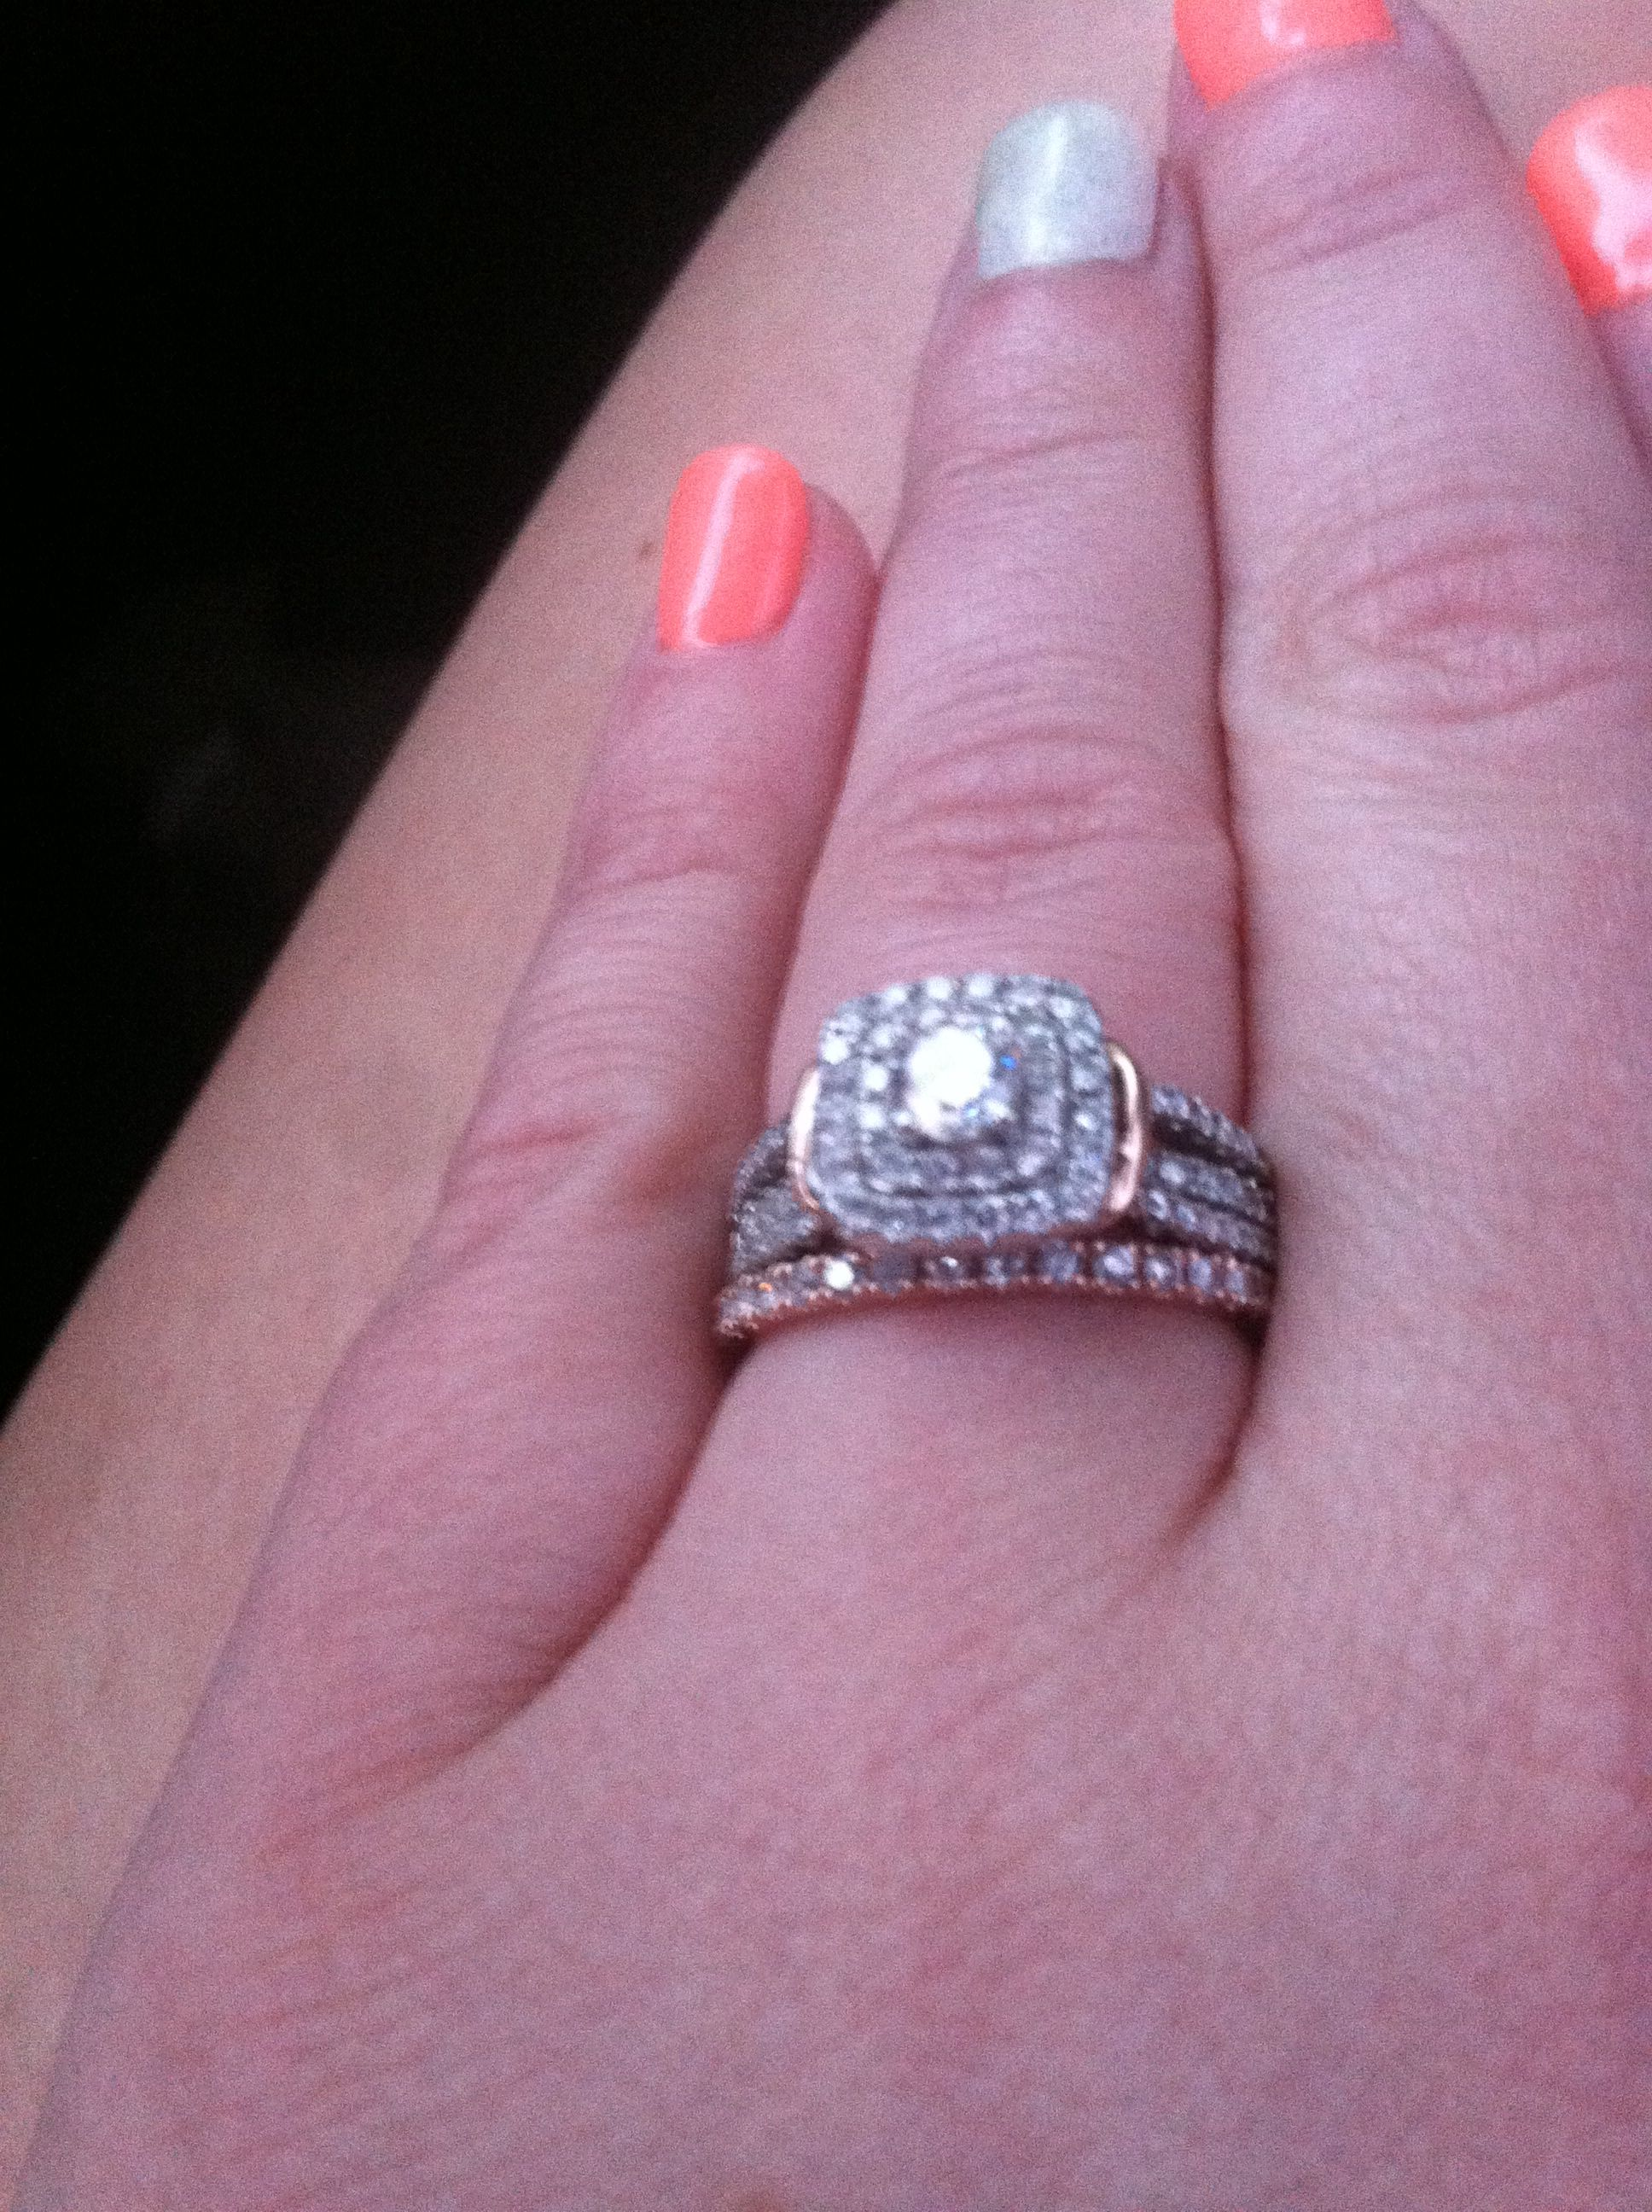 He went to Jared! Rose gold wedding band and halo with white gold ...